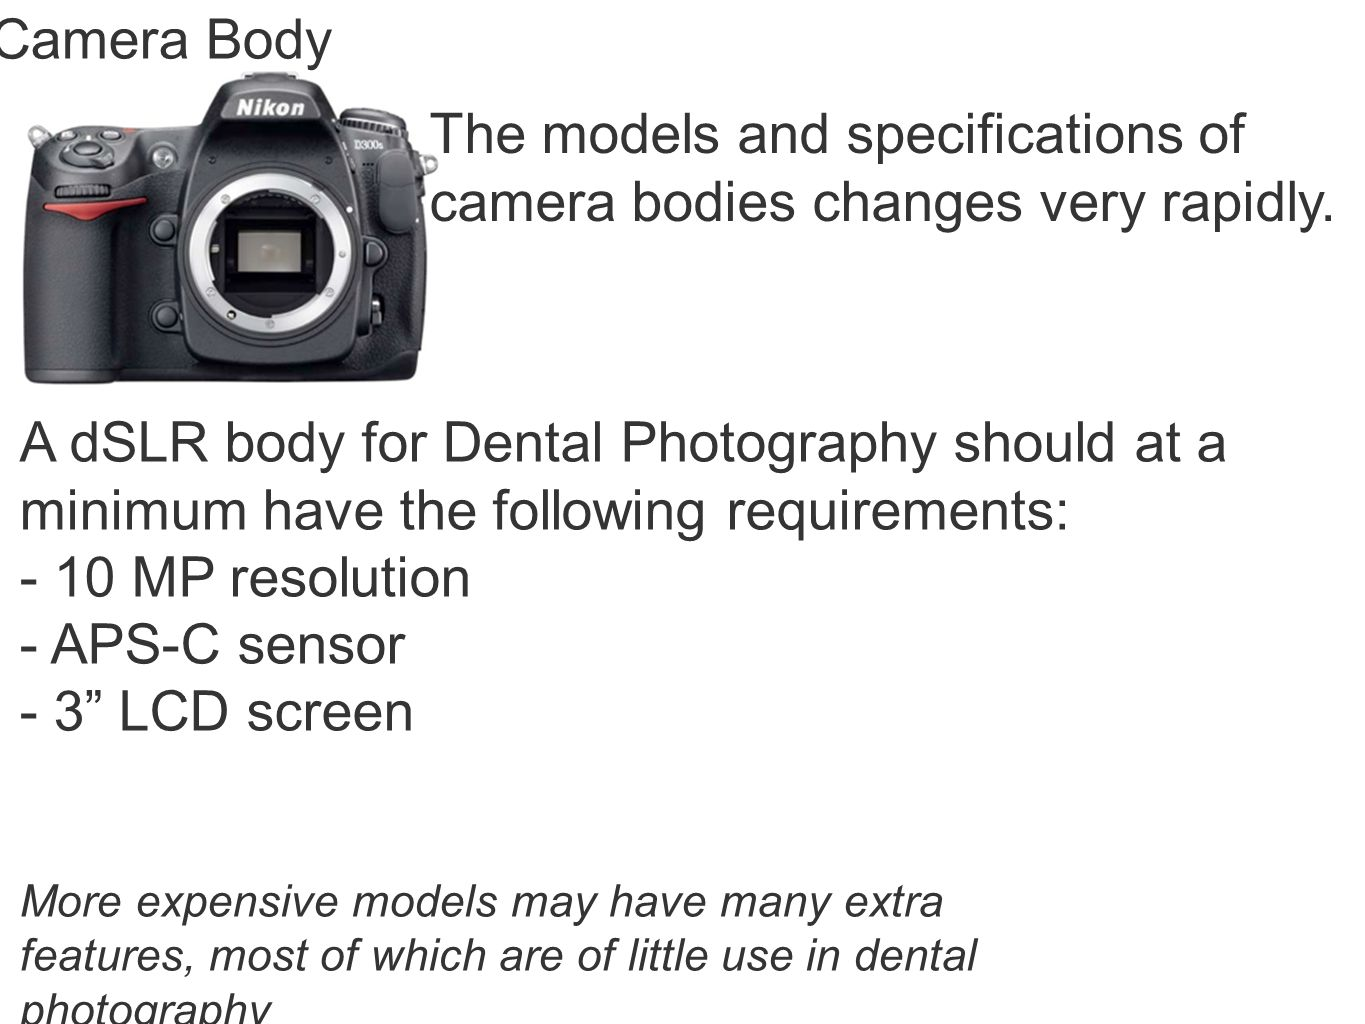 The models and specifications of camera bodies changes very rapidly.